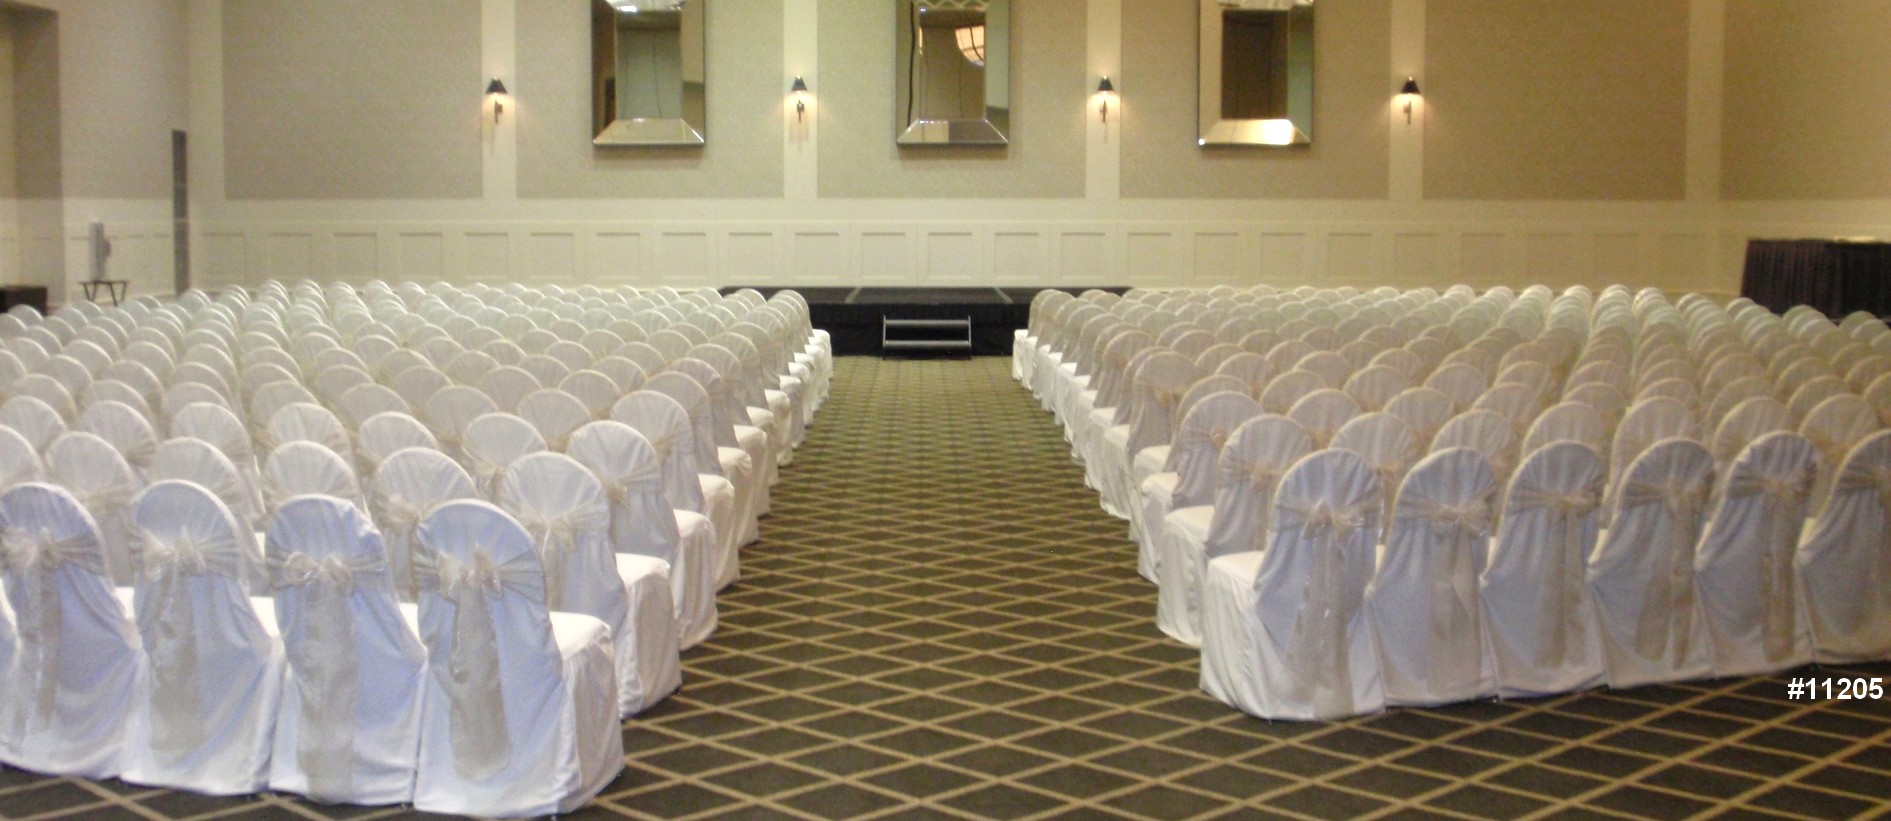 DC chair cover rentals wedding white theme color 11205 Chair cover rentals